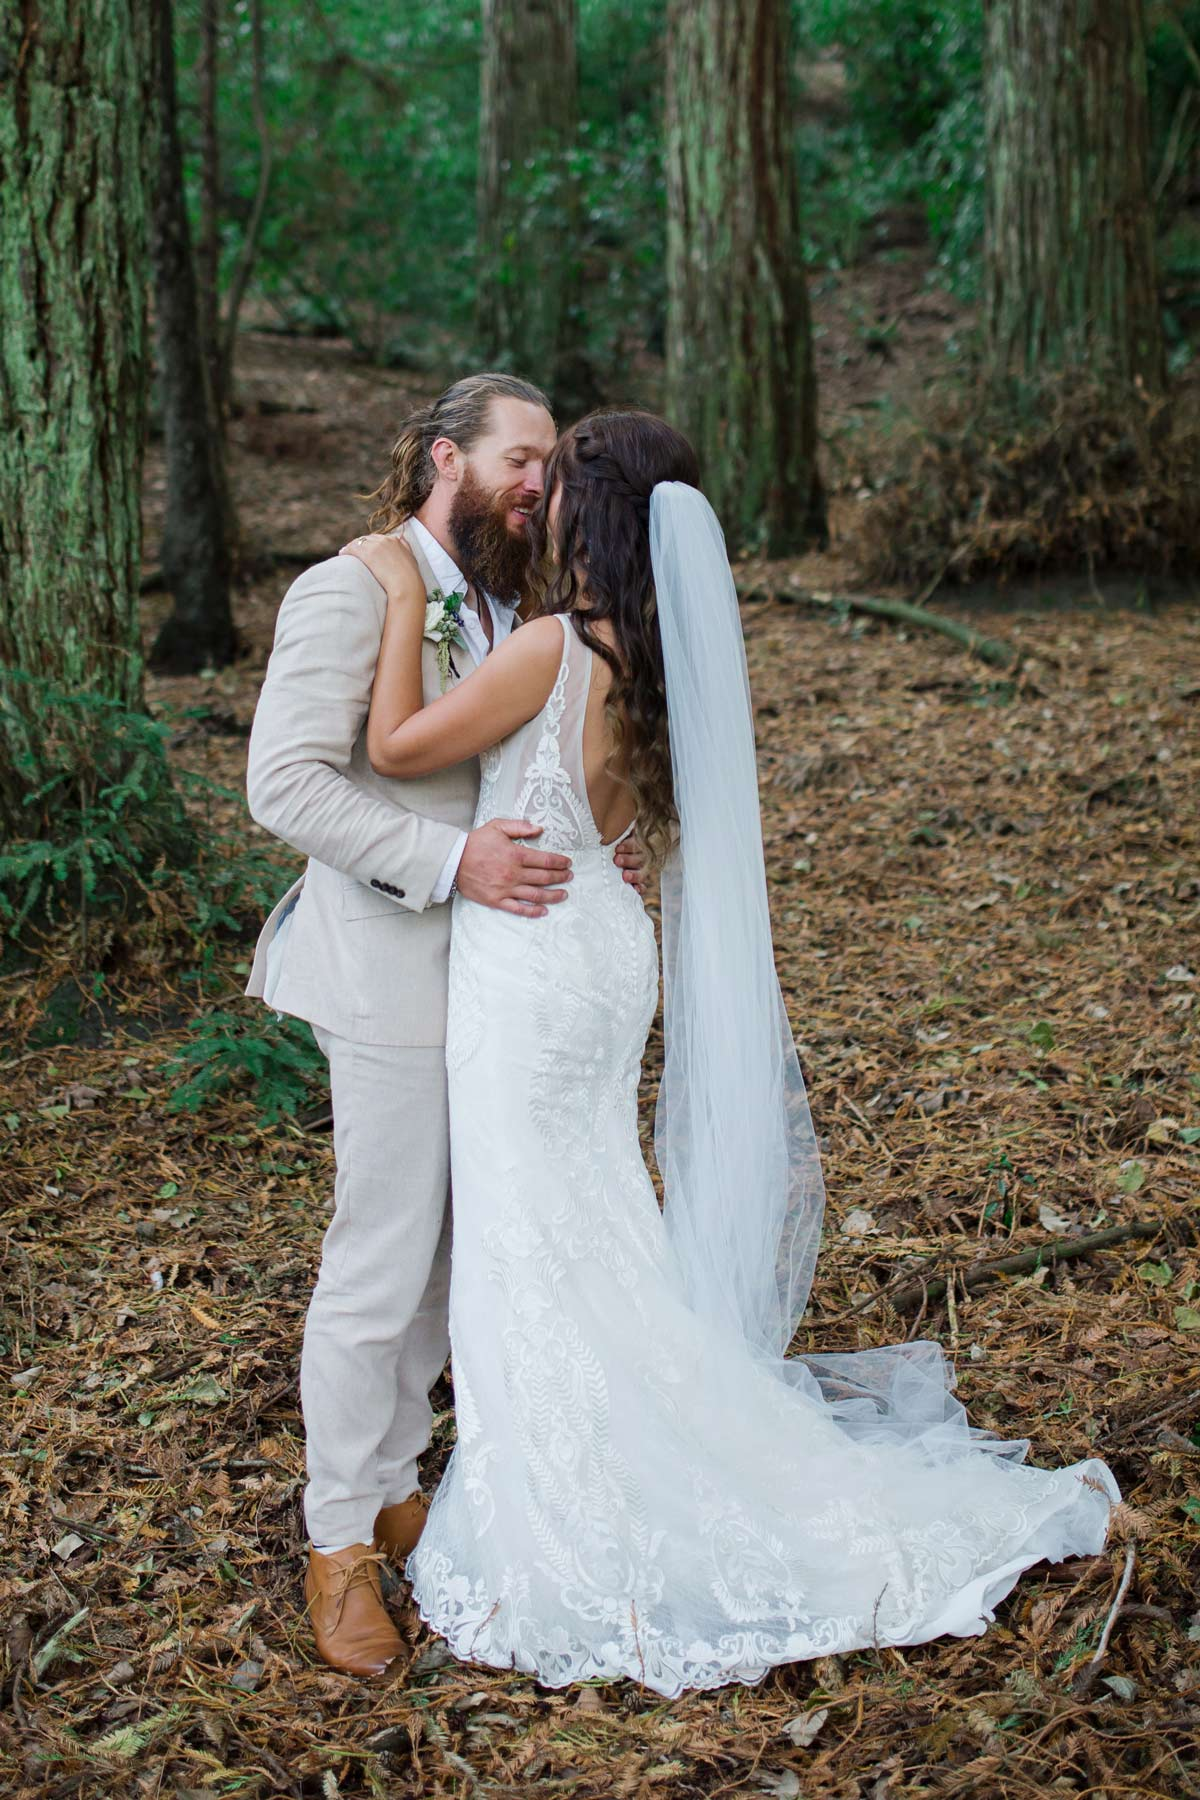 Amanda+Zane Benedetti Wedding Dress Veil Kiss Forest Cropped 0702